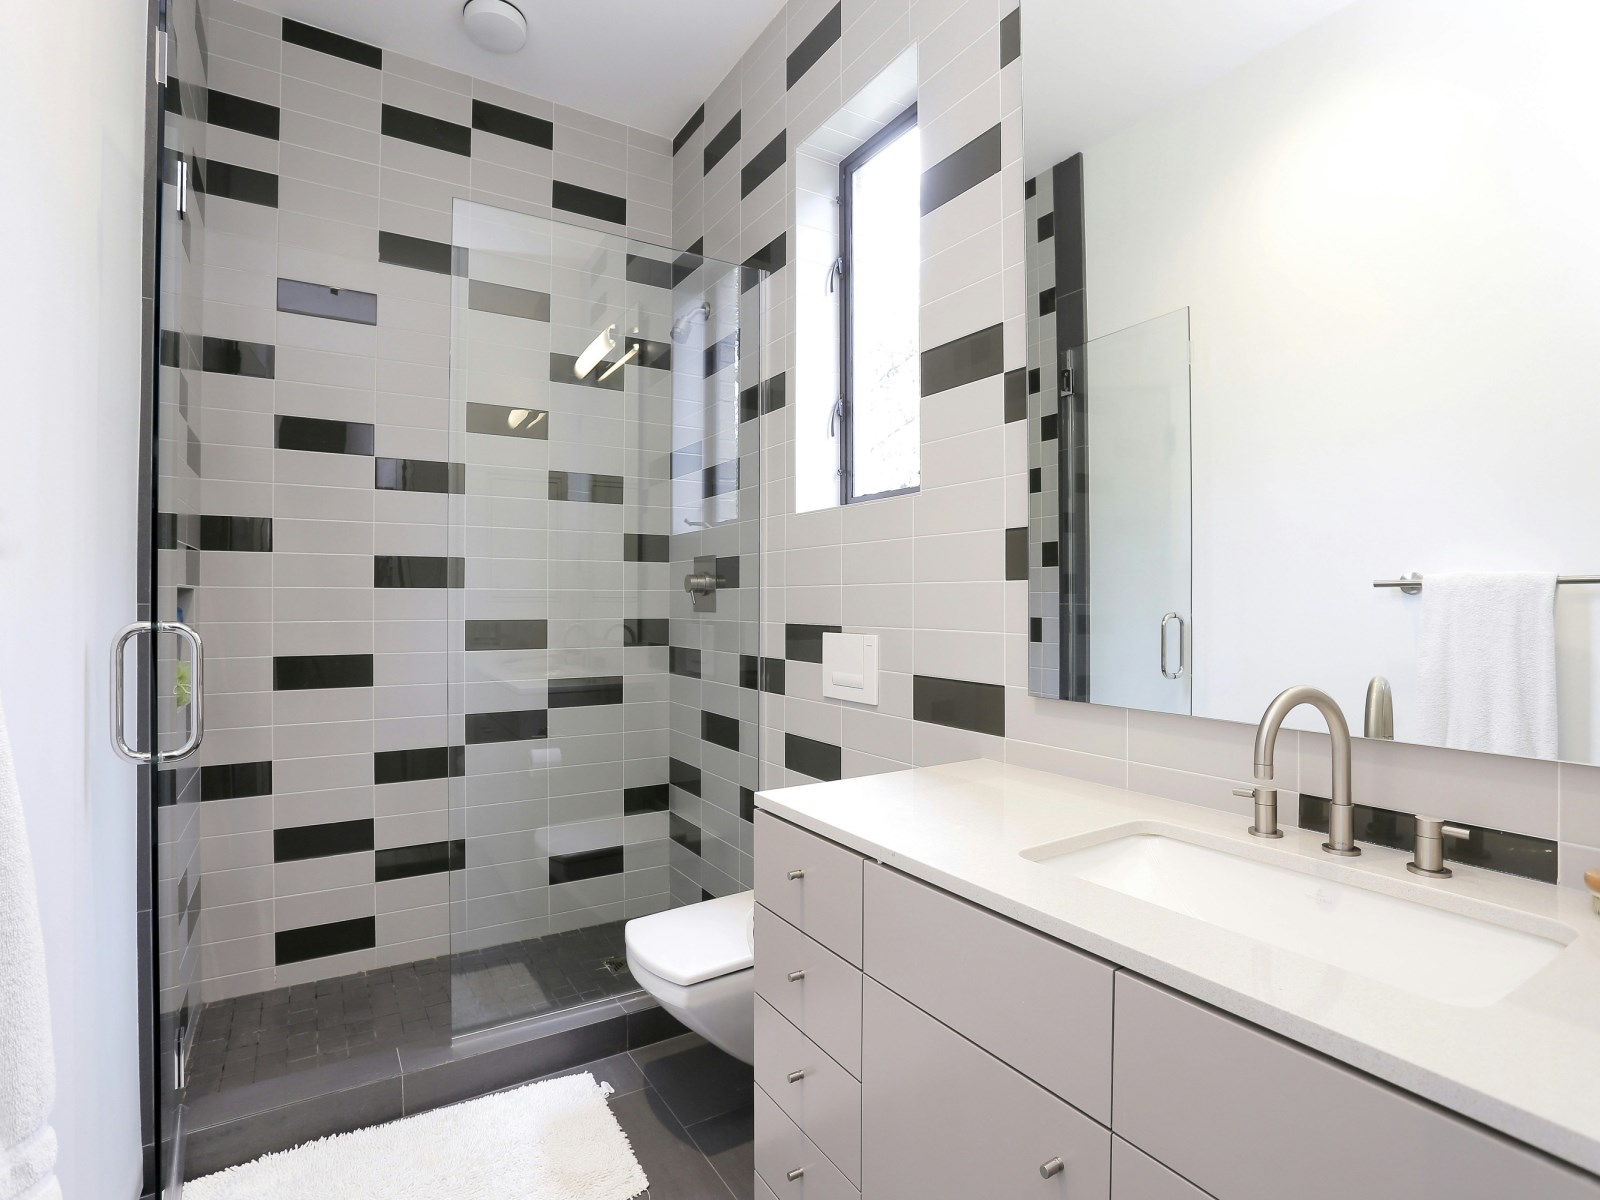 Black And Gray Tile Bathroom - A home with formidable architecture and a light interior